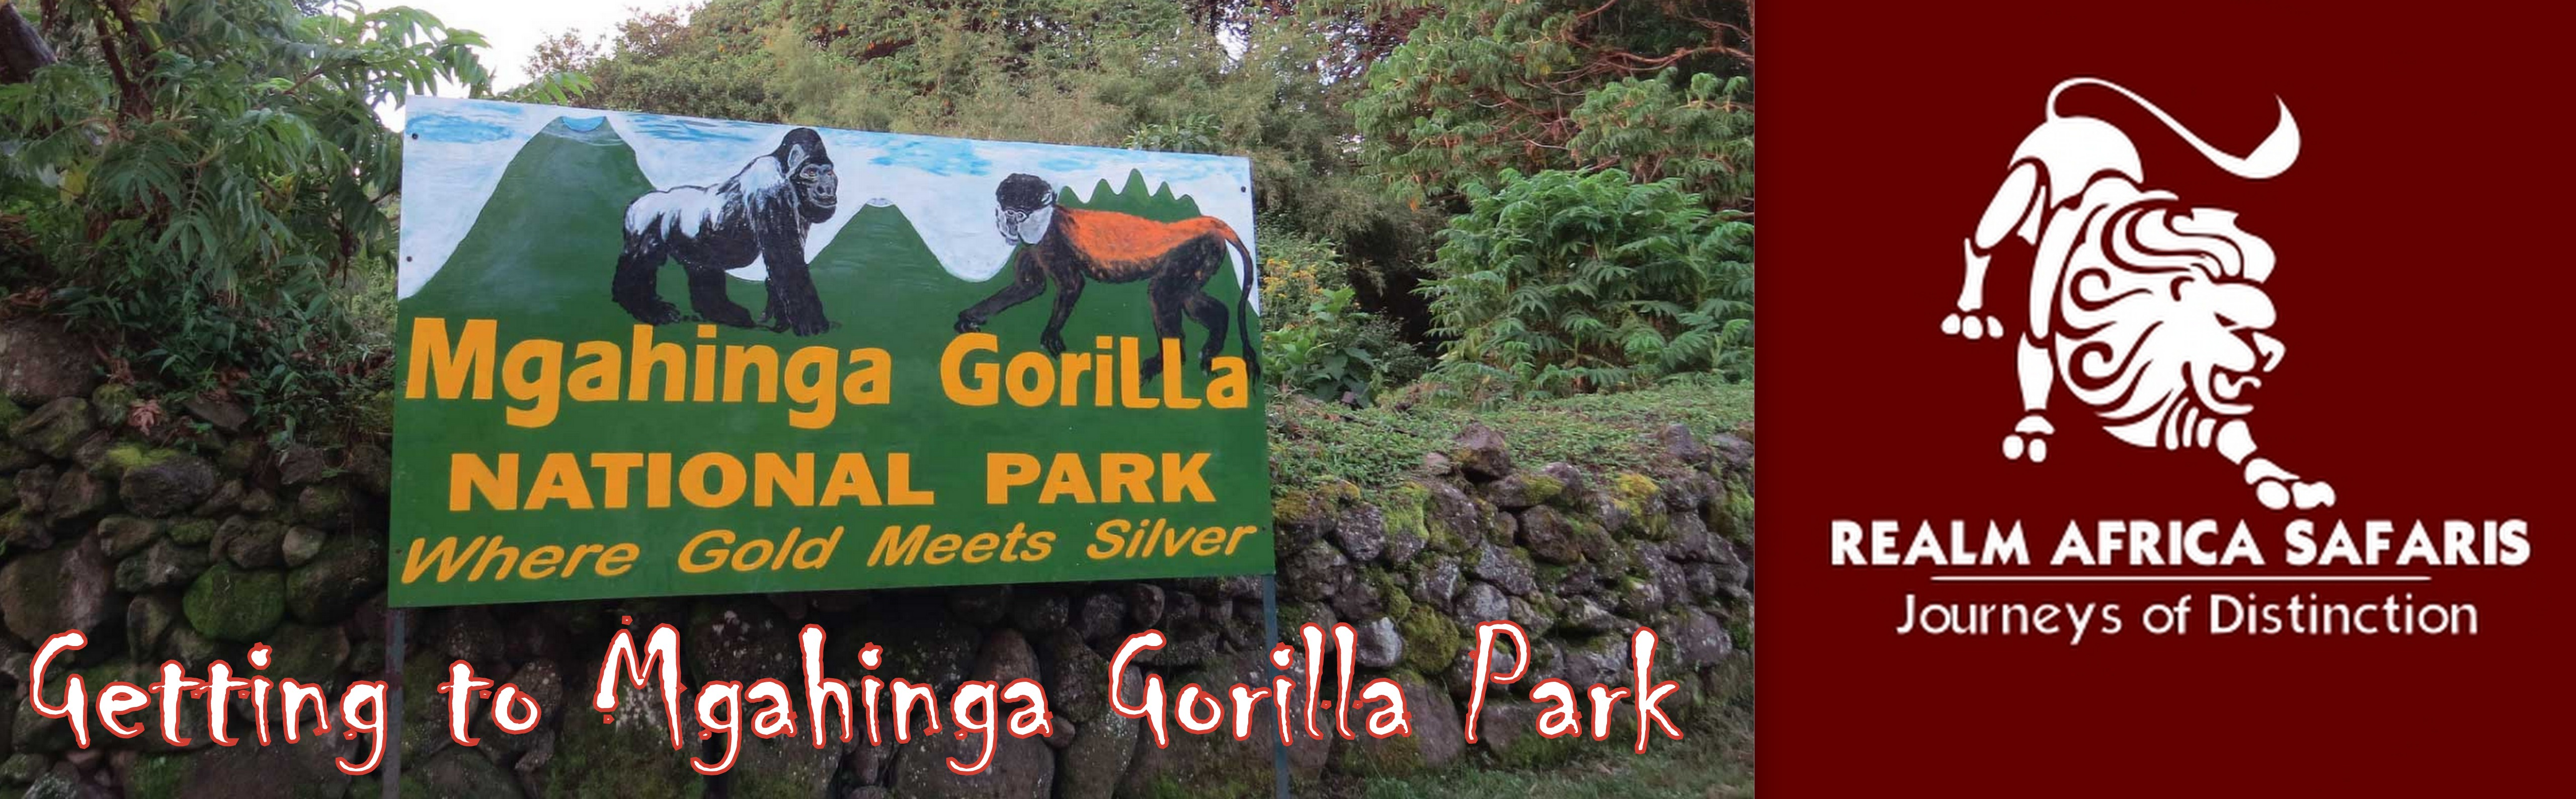 Getting to Mgahinga Gorilla Park | Realm Africa Safaris™